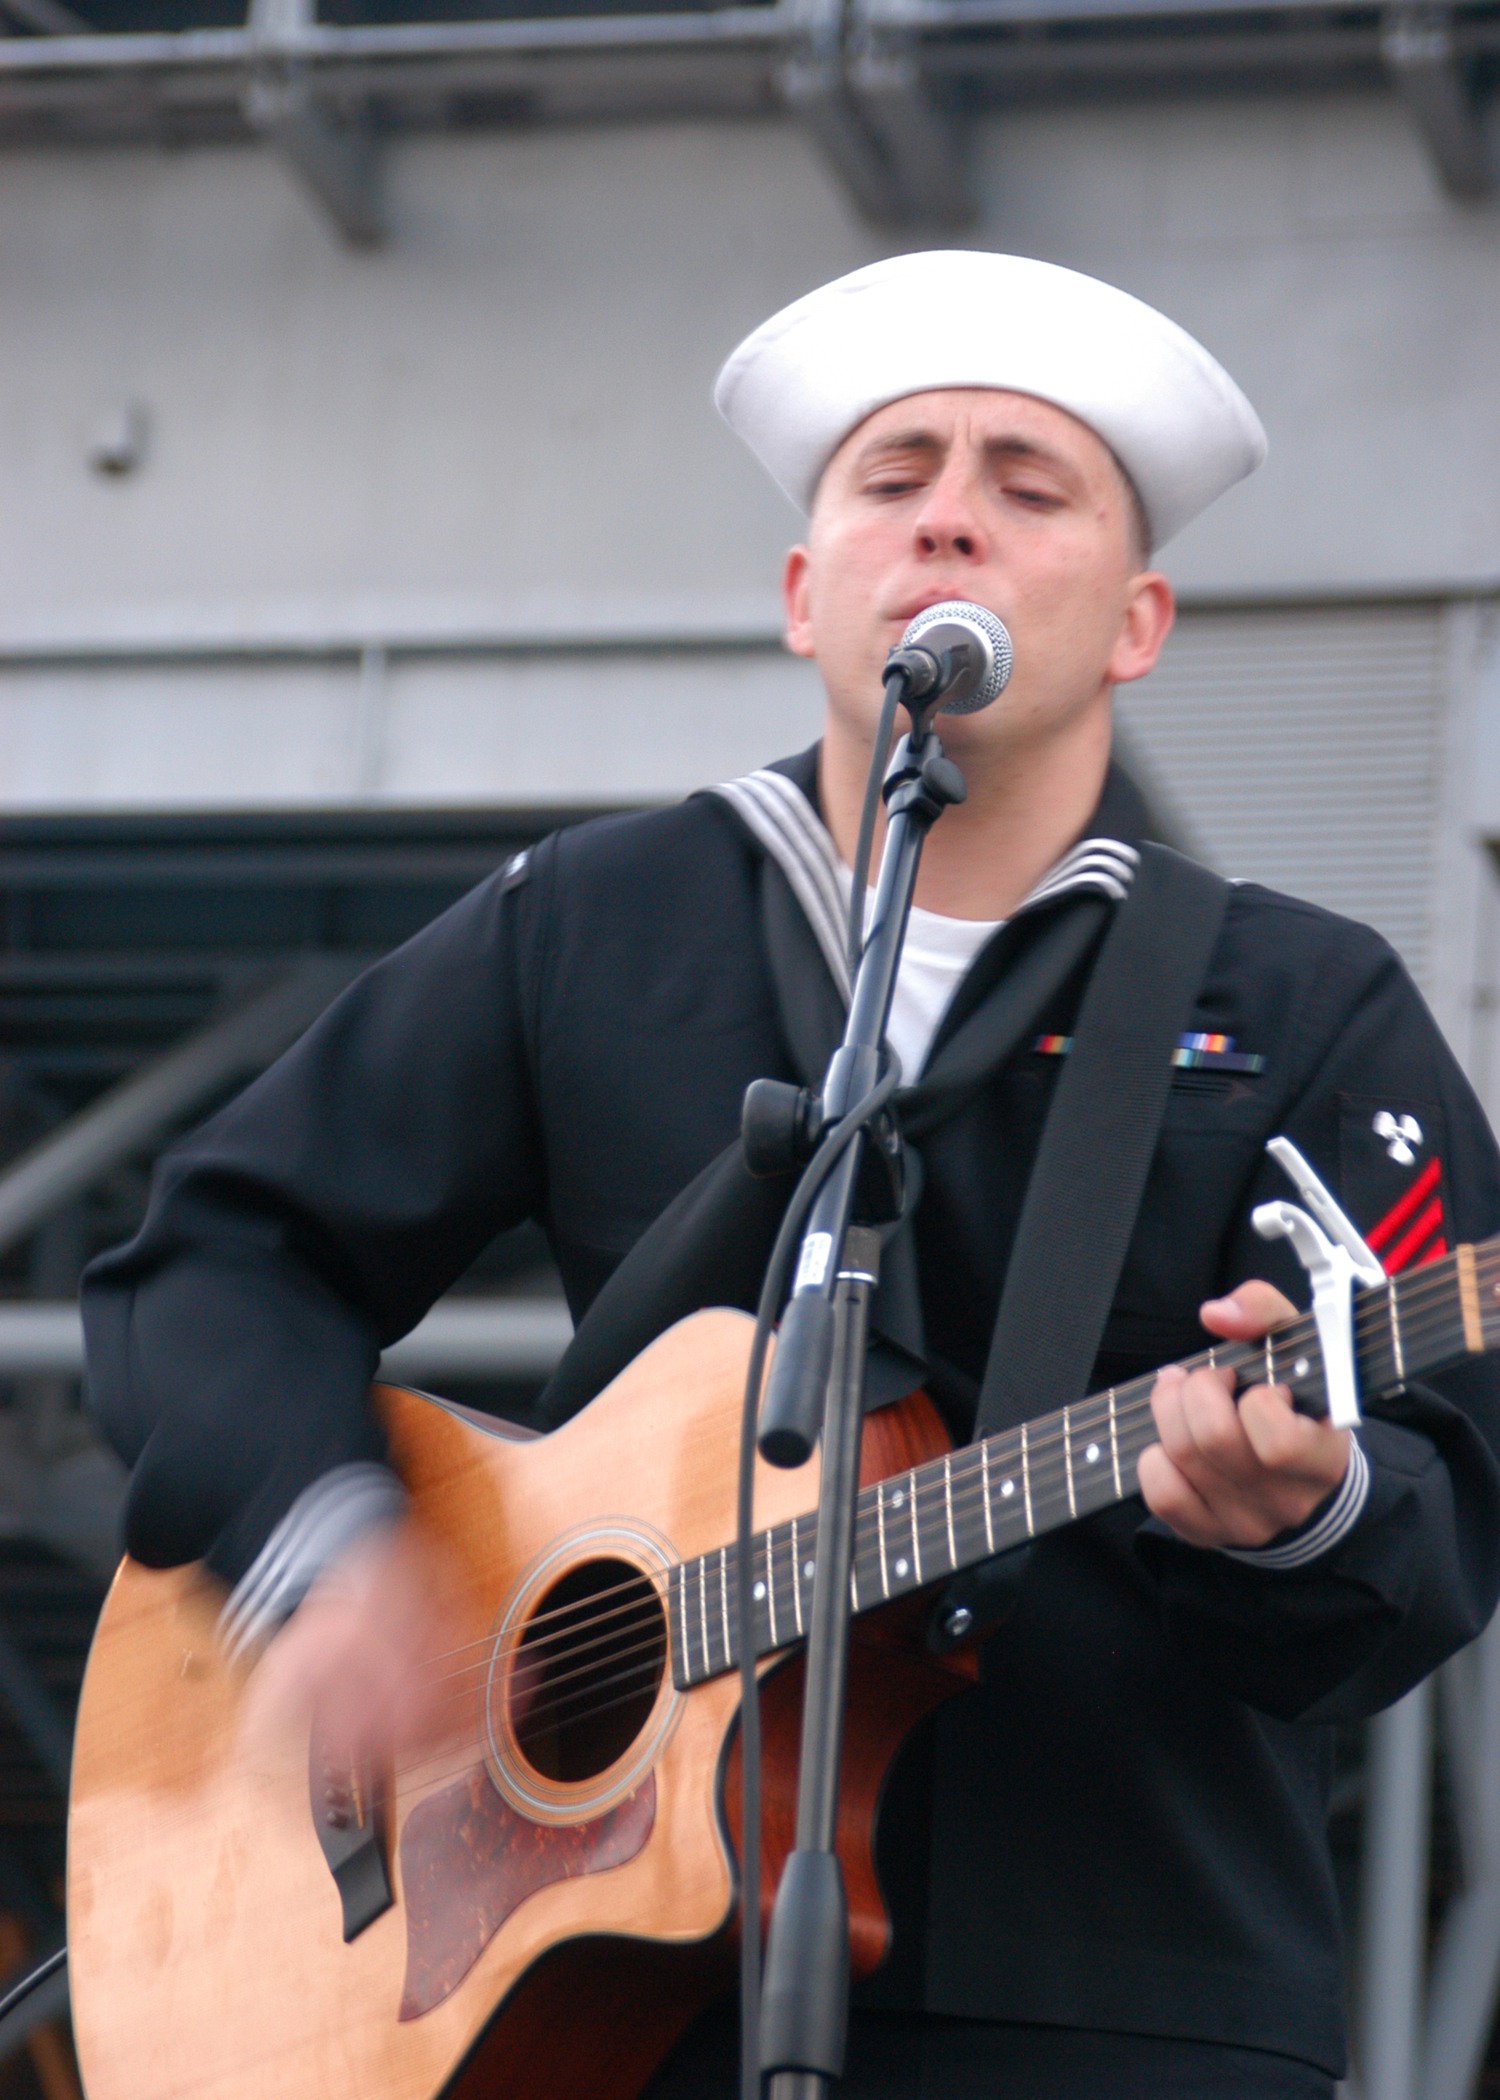 081109-N-6043G-075 Machinist's Mate Fireman Tommy Stanley performs outside the newly renovated Intrepid Sea, Air ^ Space Museum in Manhattan.jpg English: NEW YORK (Nov